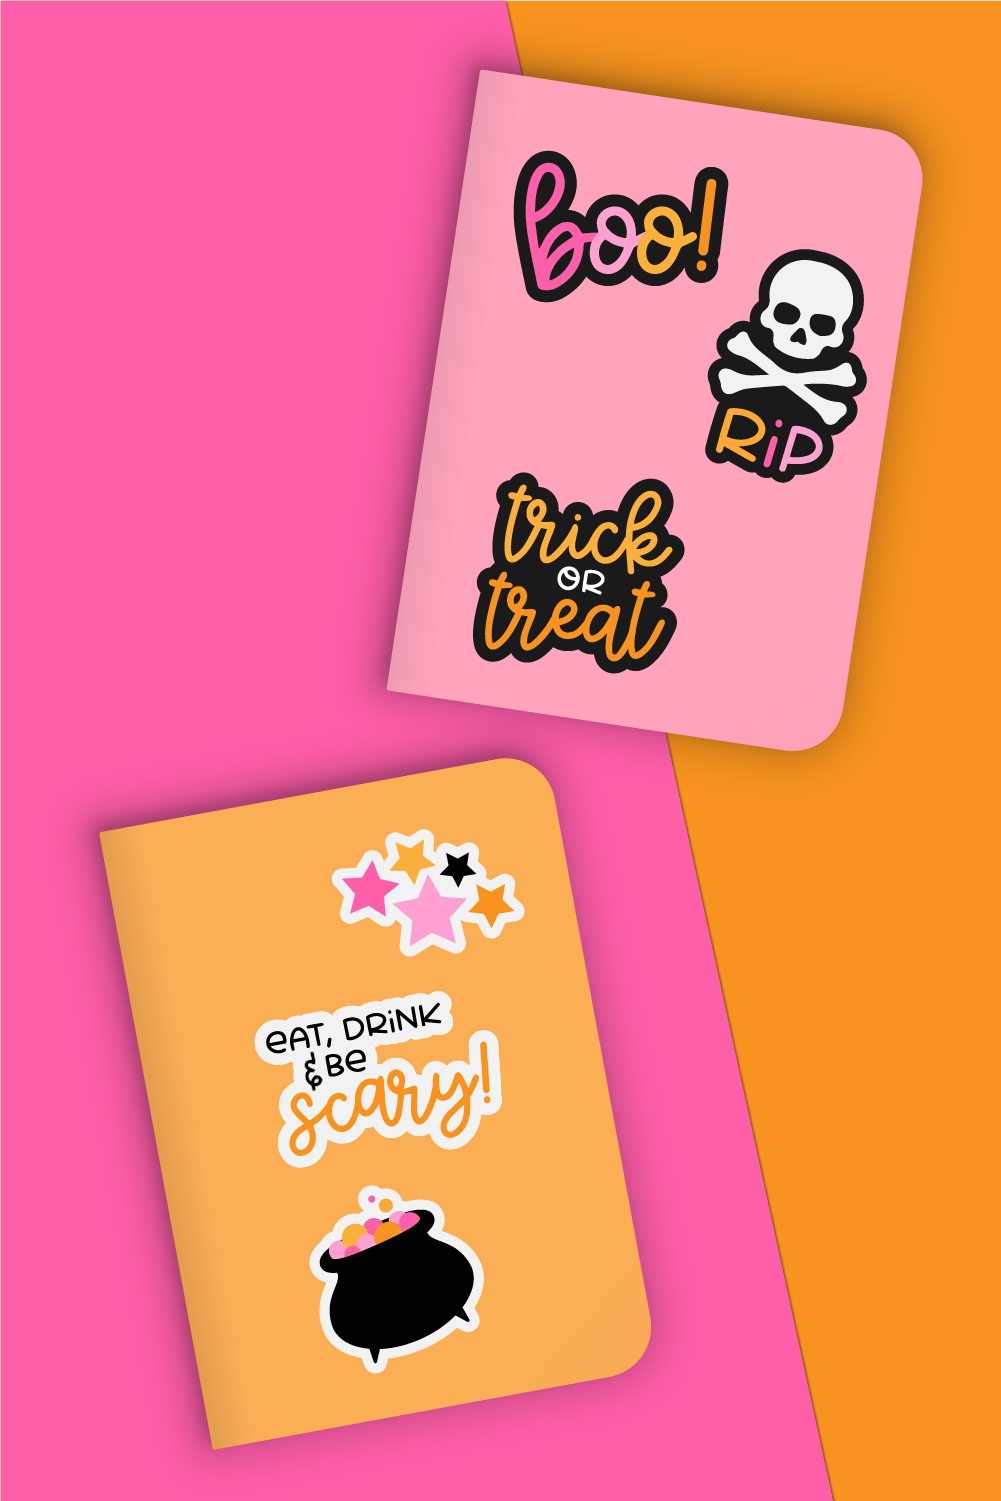 Halloween stickers on pink and orange notebooks.